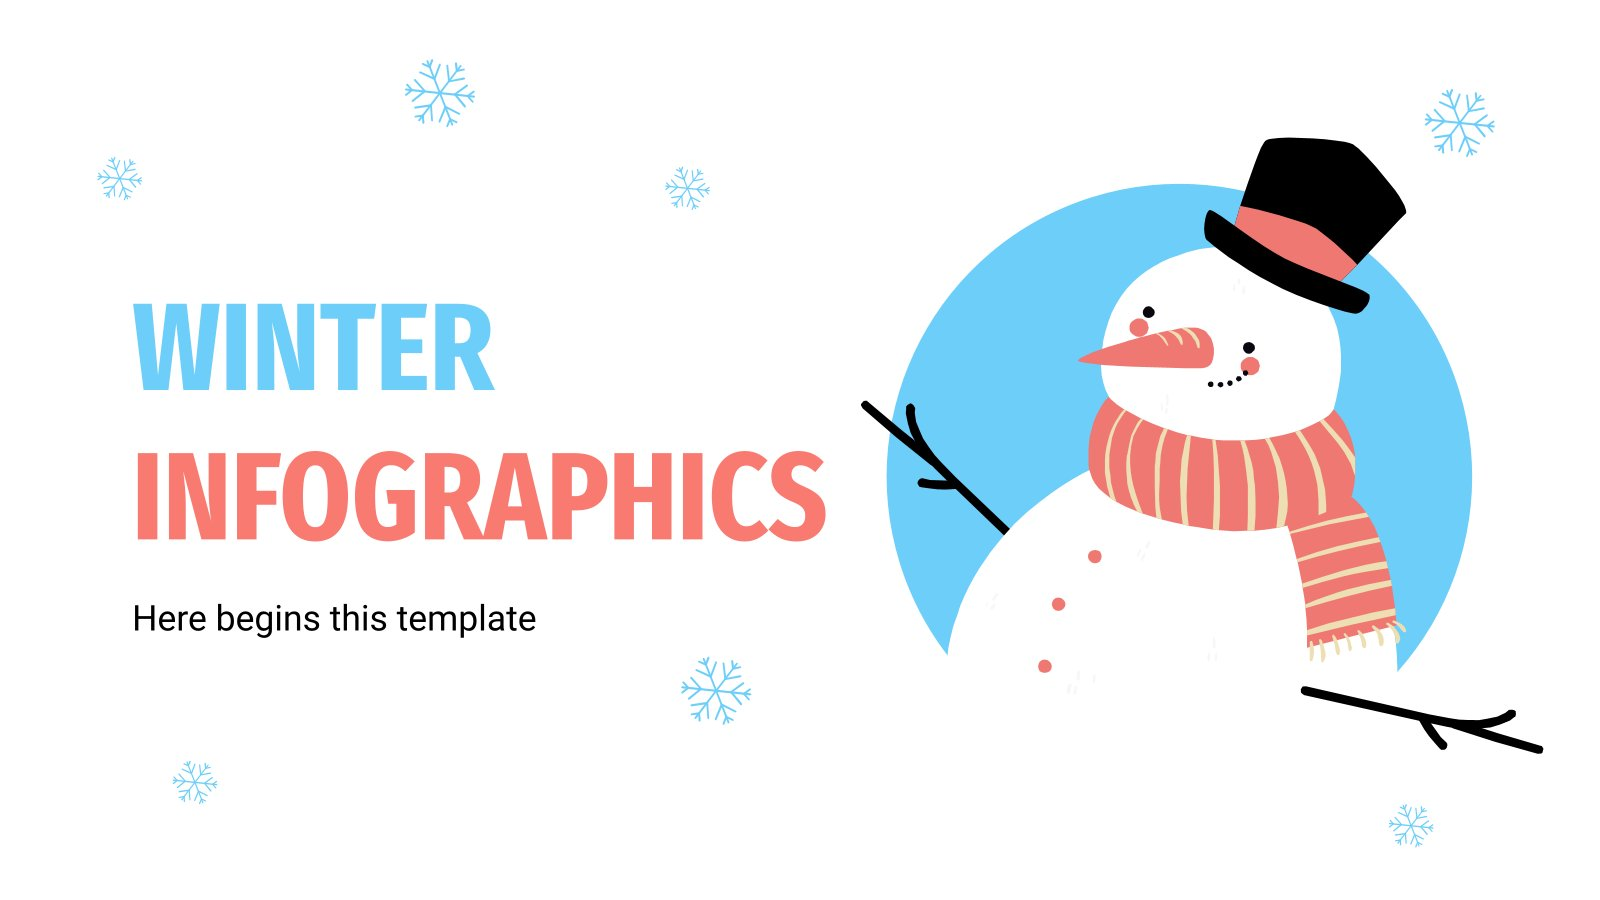 Winter Infographics presentation template